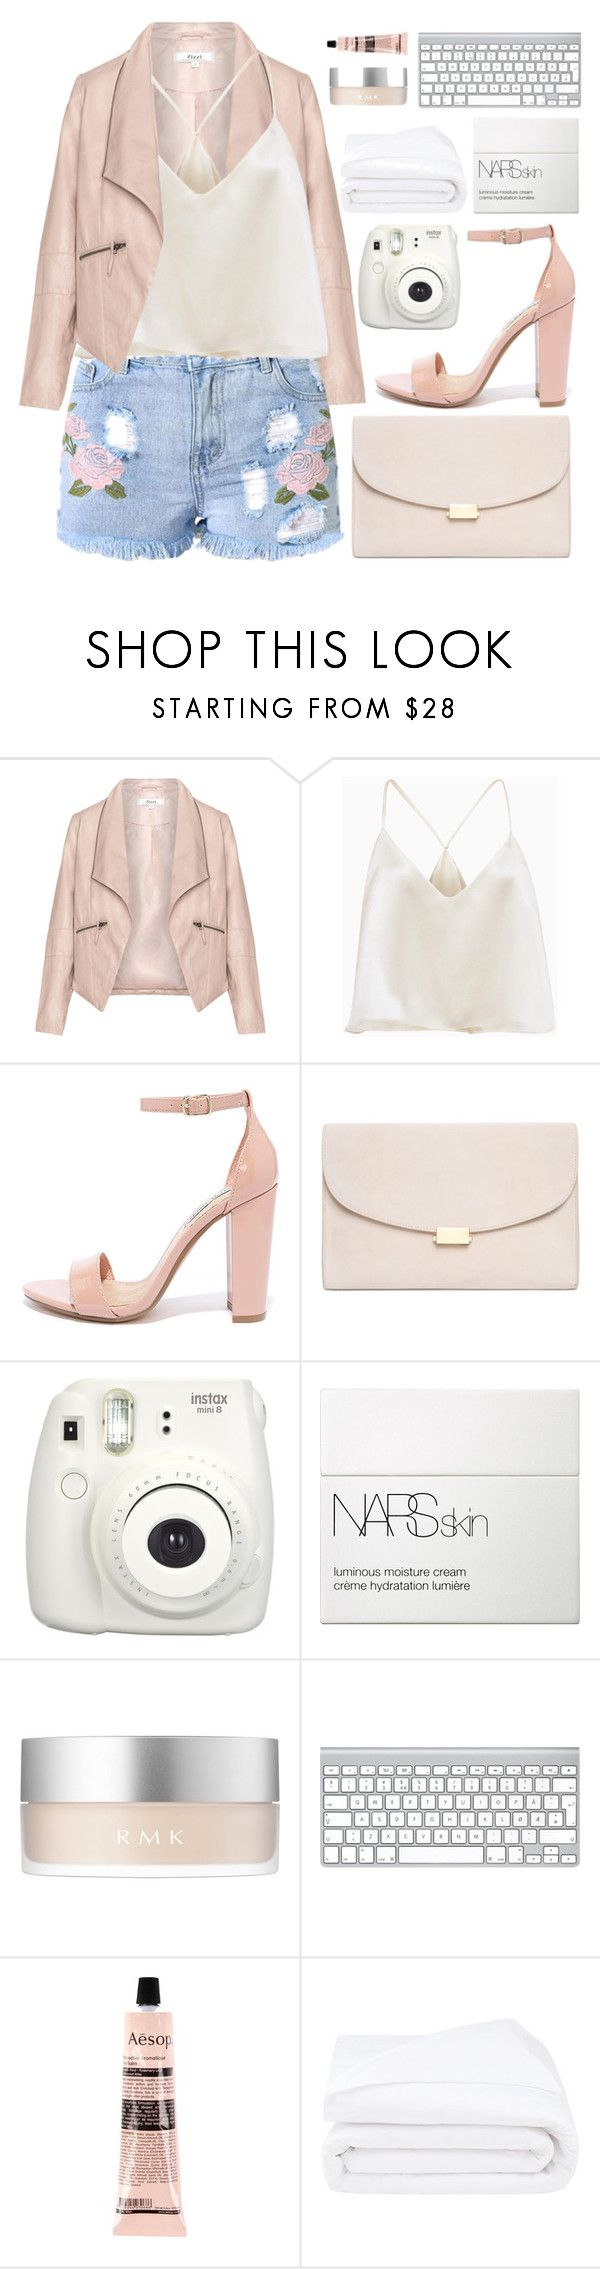 """""""girlfriend material"""" by charli-oakeby ❤ liked on Polyvore featuring Zizzi, Steve Madden, Mansur Gavriel, NARS Cosmetics, RMK, Aesop, Frette and pastel"""